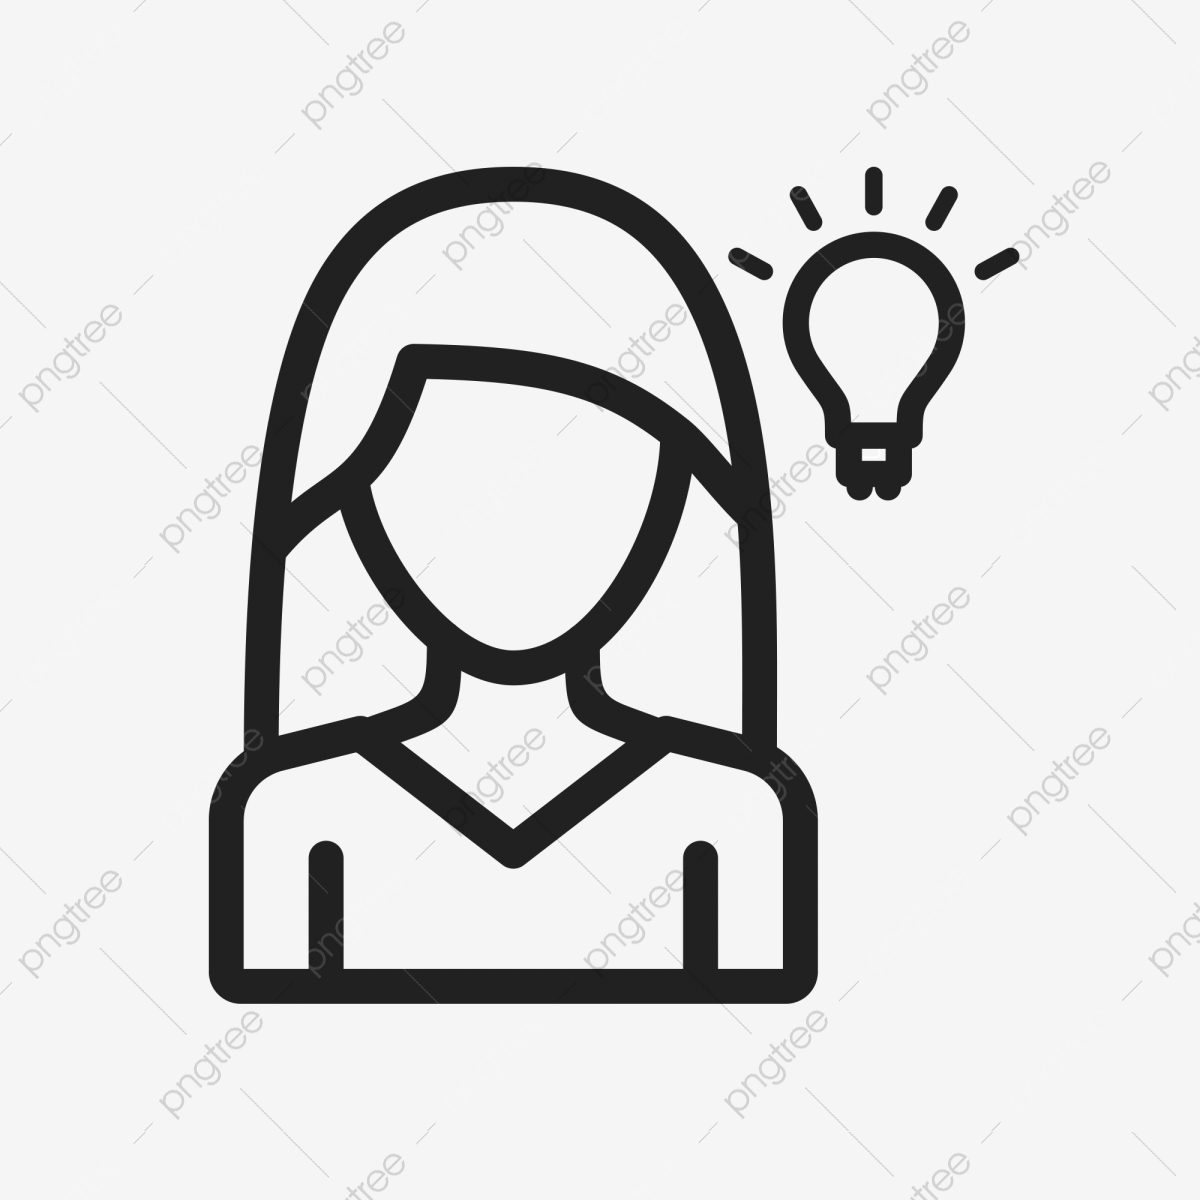 inspiration icon thinking inspiration flat ui png transparent clipart image and psd file for free download https pngtree com freepng inspiration icon 4491558 html